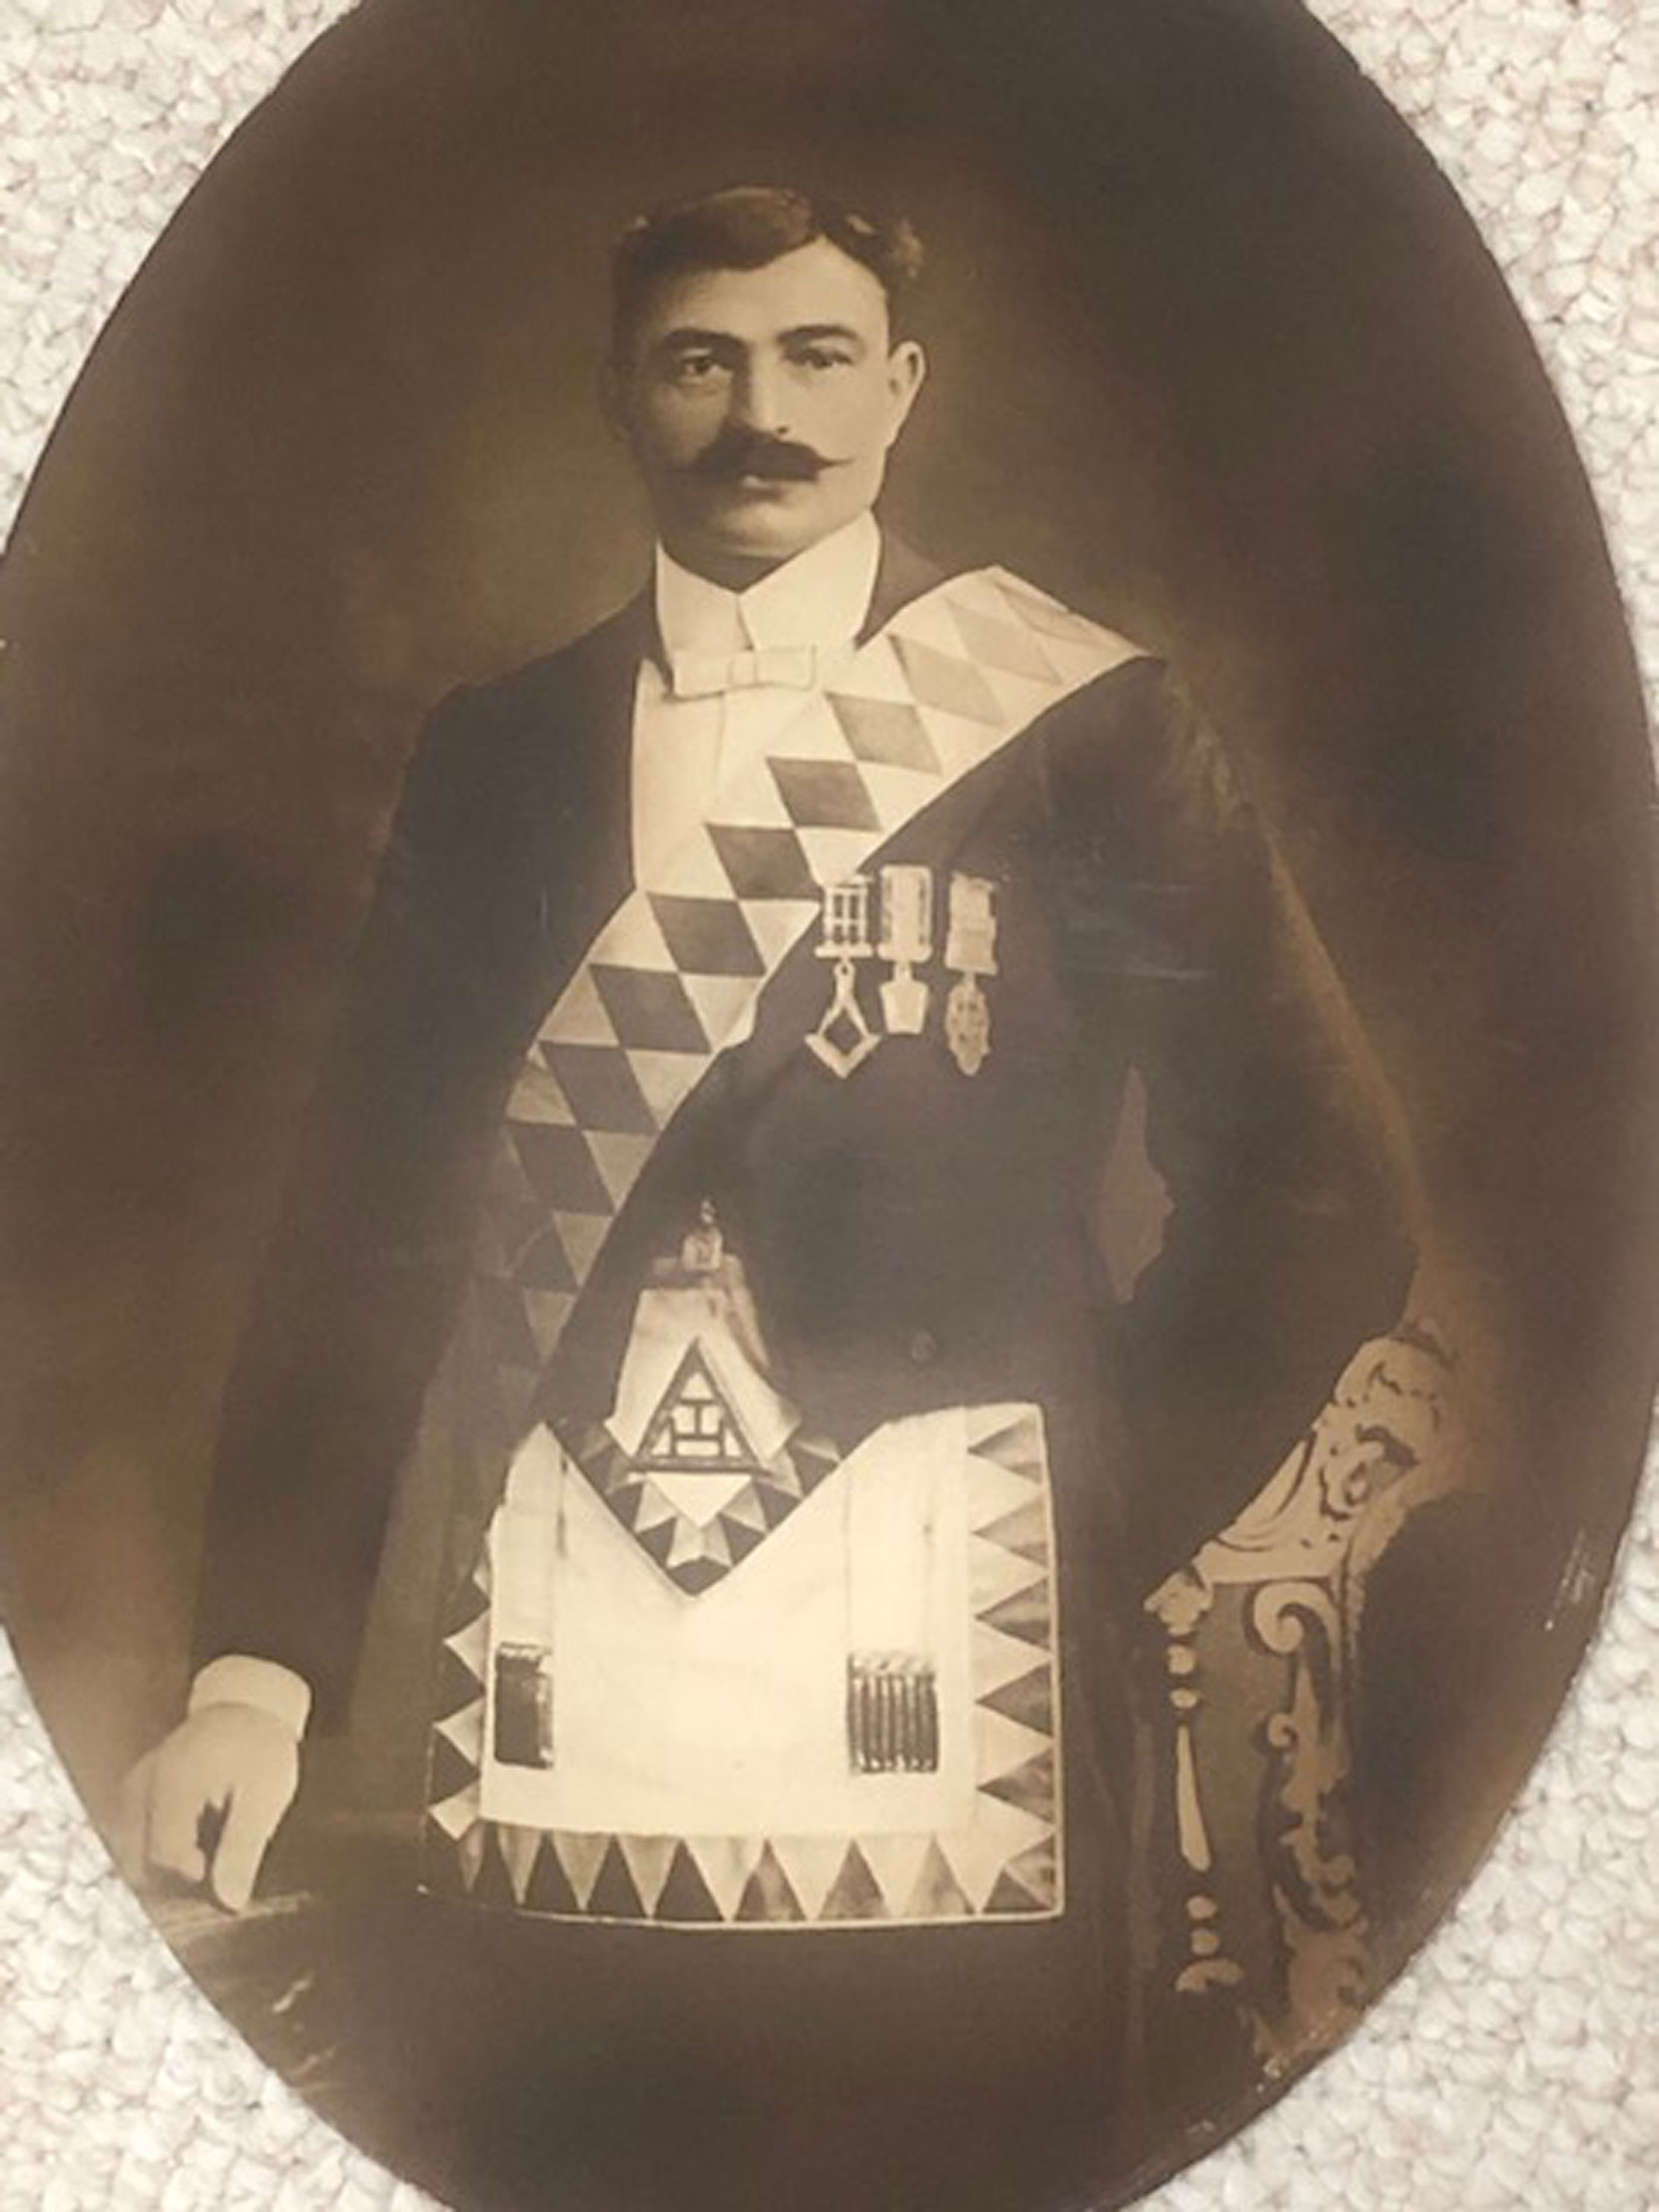 Nelson Ockenden in Royal Arch regalia, circa 1910 (Photo courtesy of David Ockenden - used with permission)